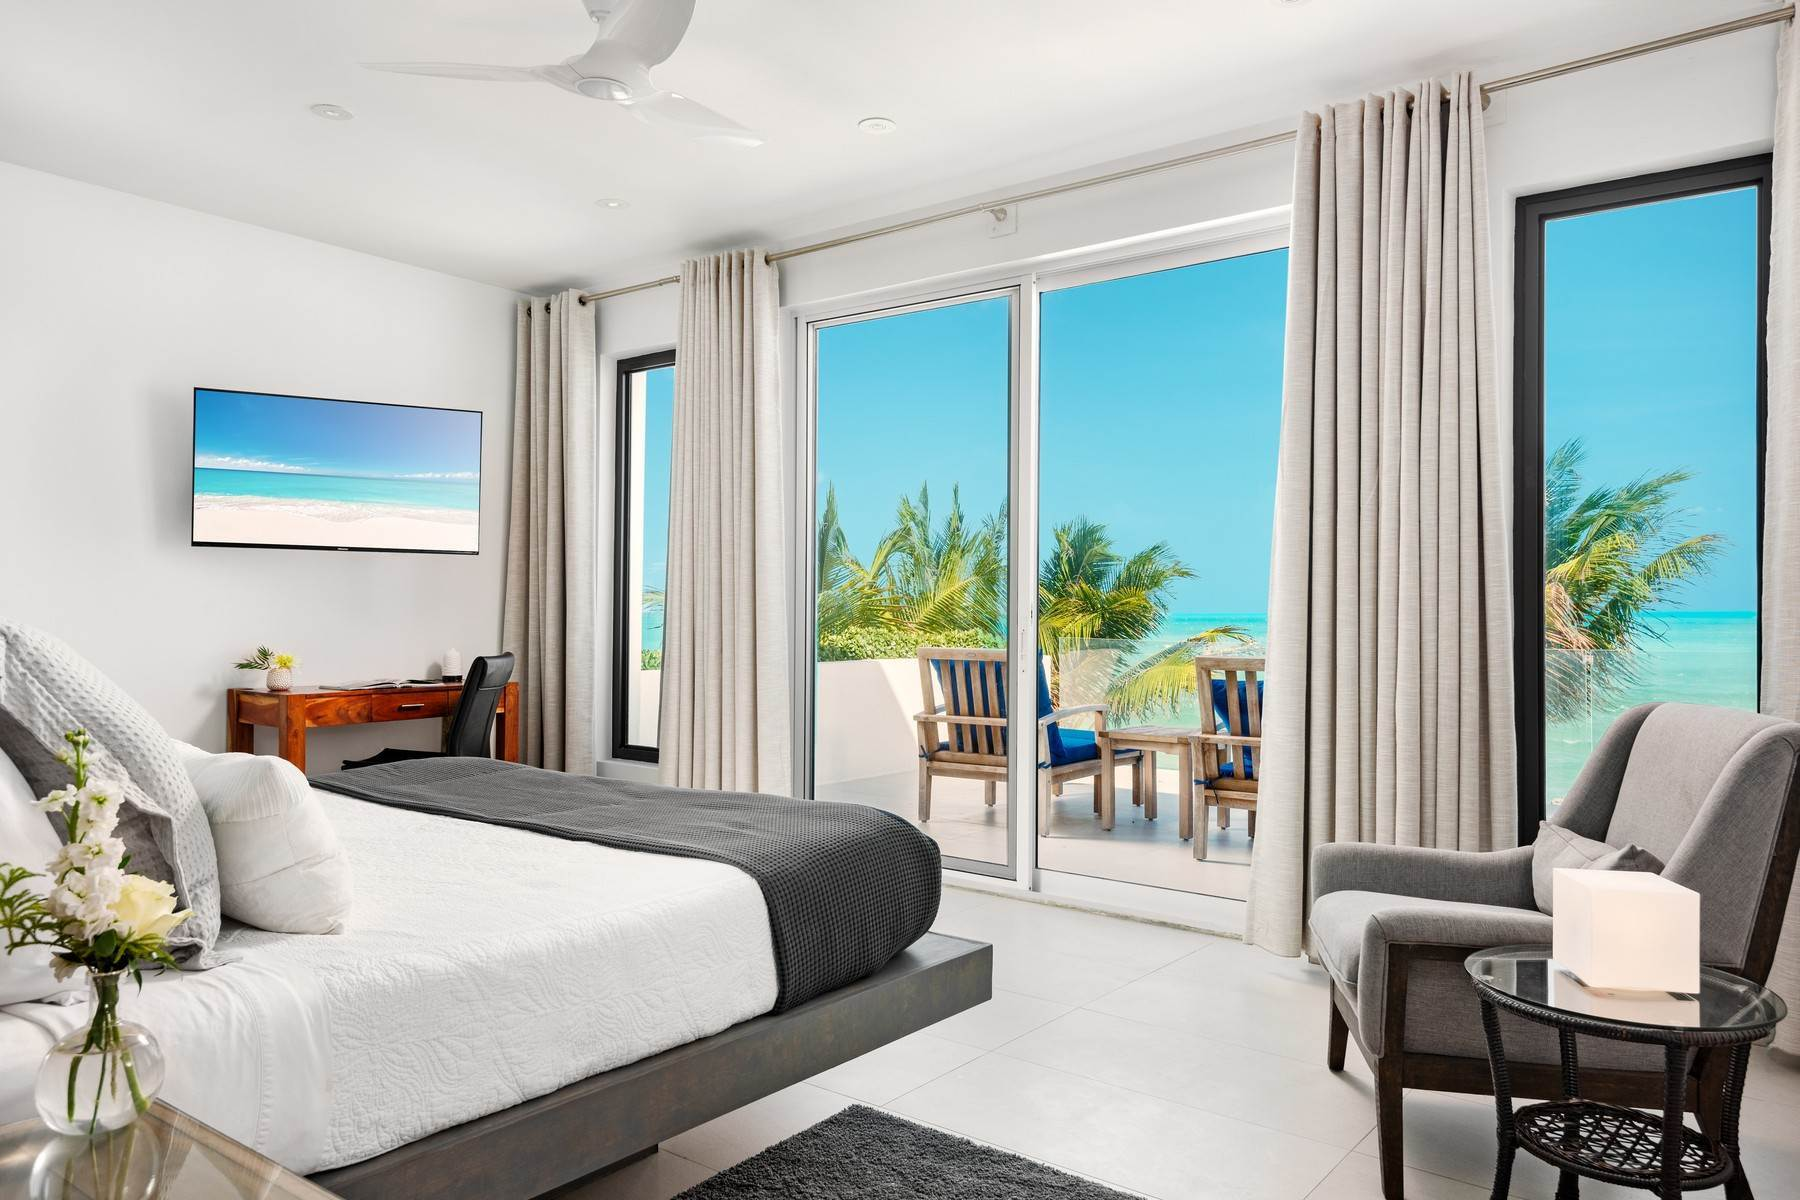 10. Single Family Homes for Sale at Tip Of The Tail Villa Turtle Tail, Providenciales Turks And Caicos Islands